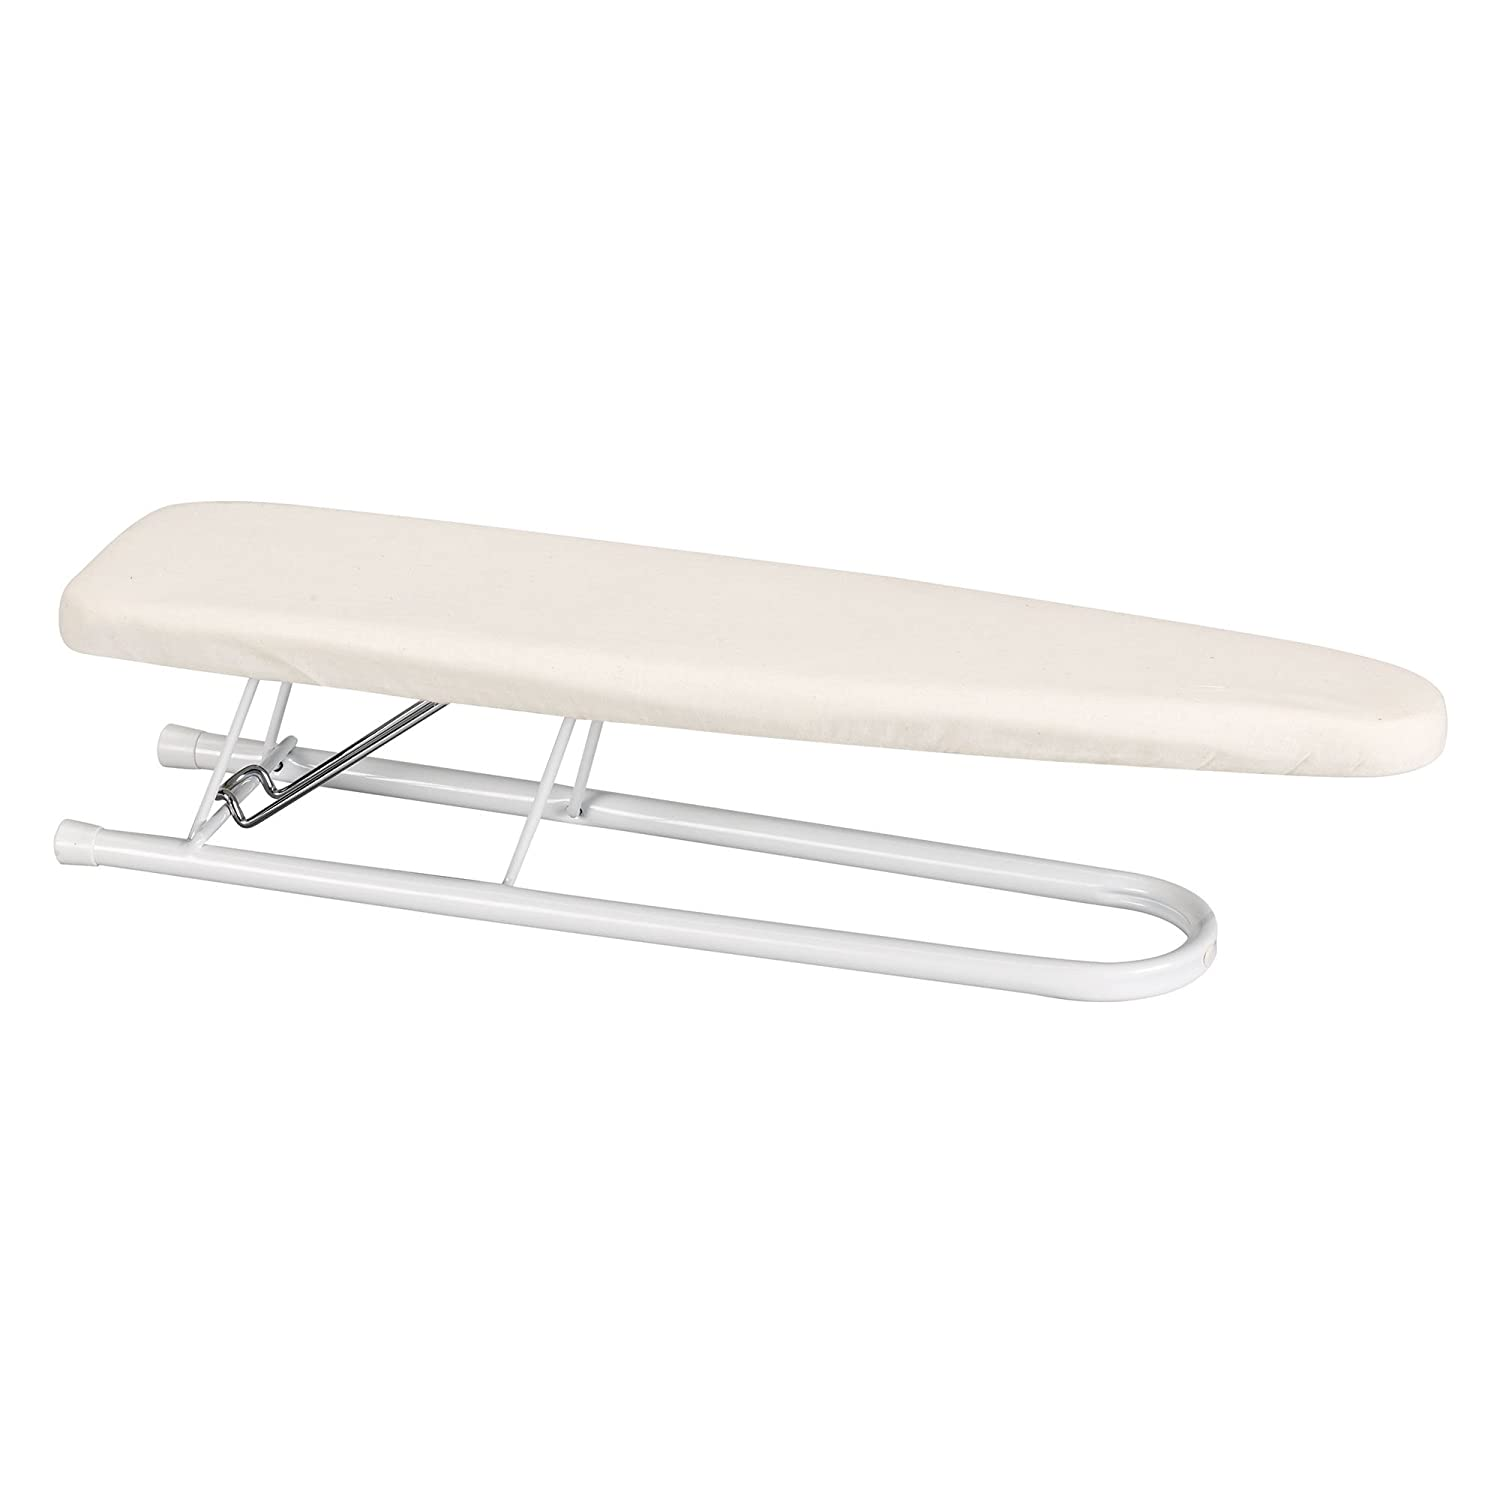 Household Essentials 120001 Accessory Sleeveboard Mini Ironing Board | White